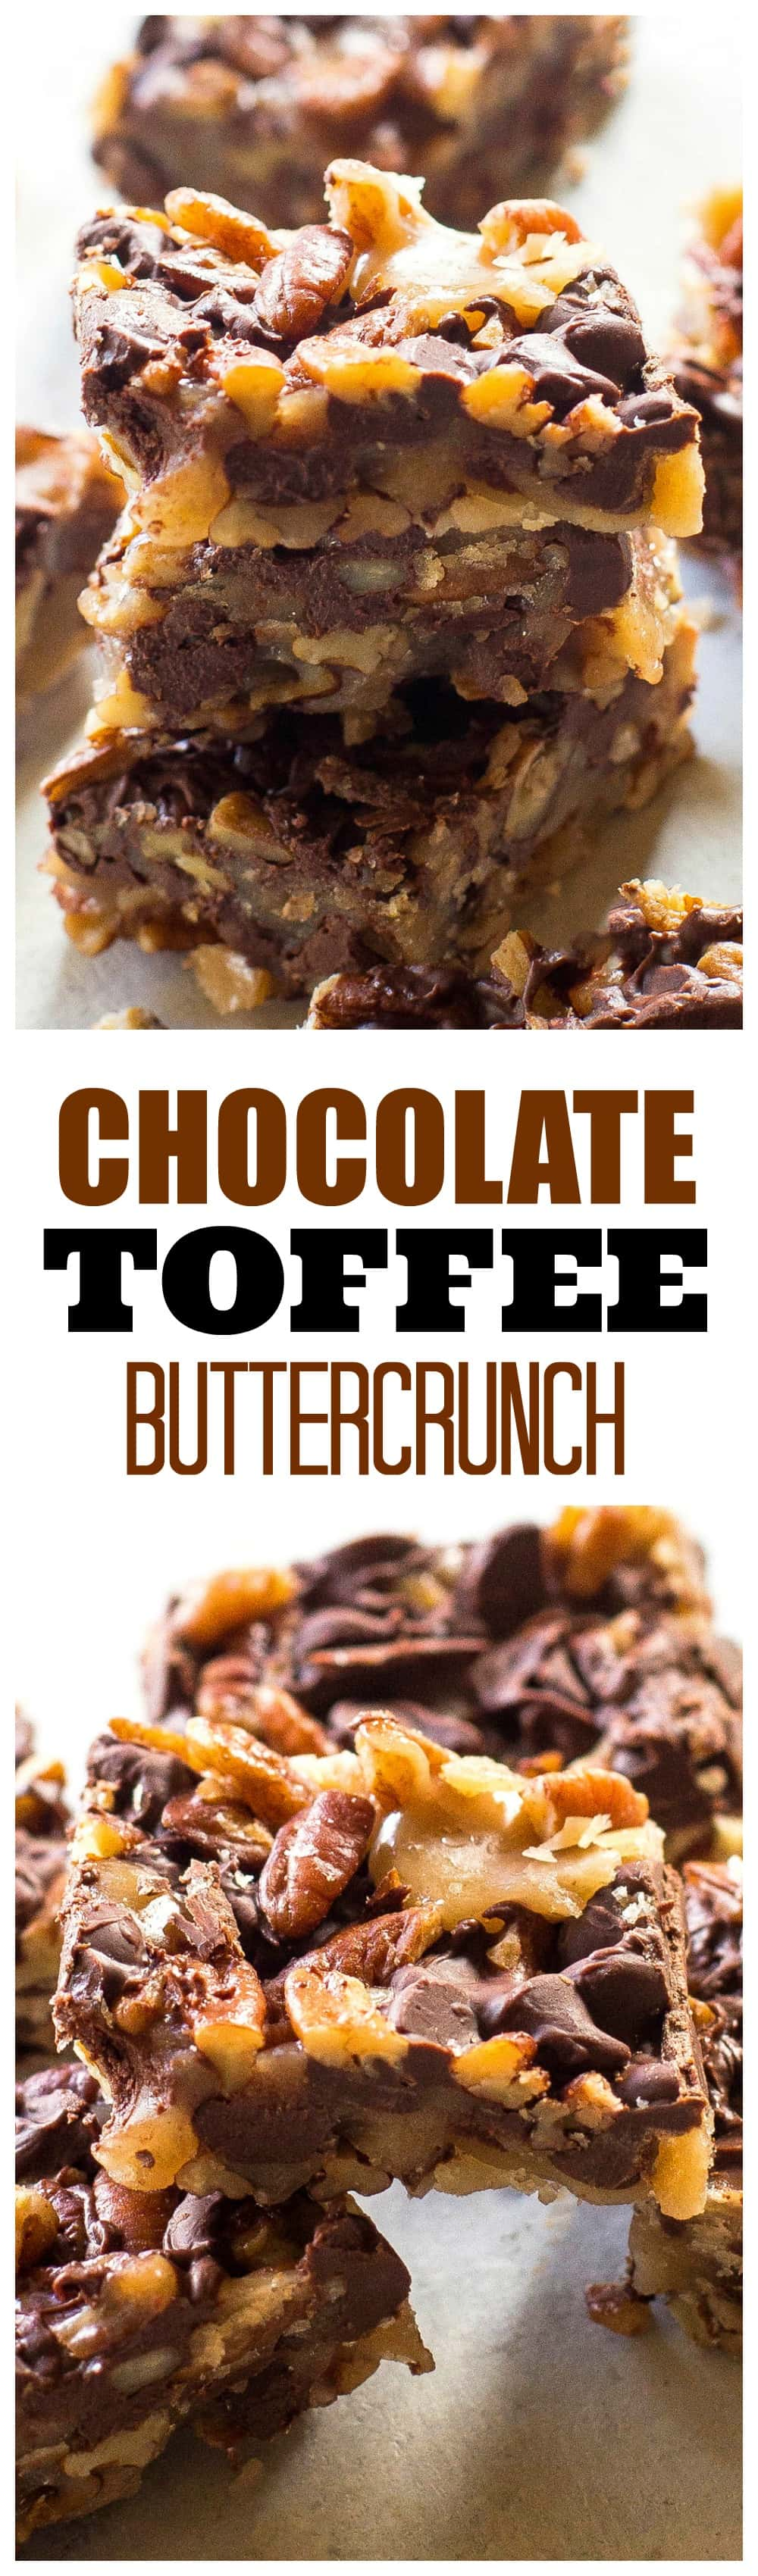 Chocolate Toffee Buttercrunch - toffee, nuts, and chocolate and so easy to make! #chocolate #toffee #buttercrunch #recipe #christmas